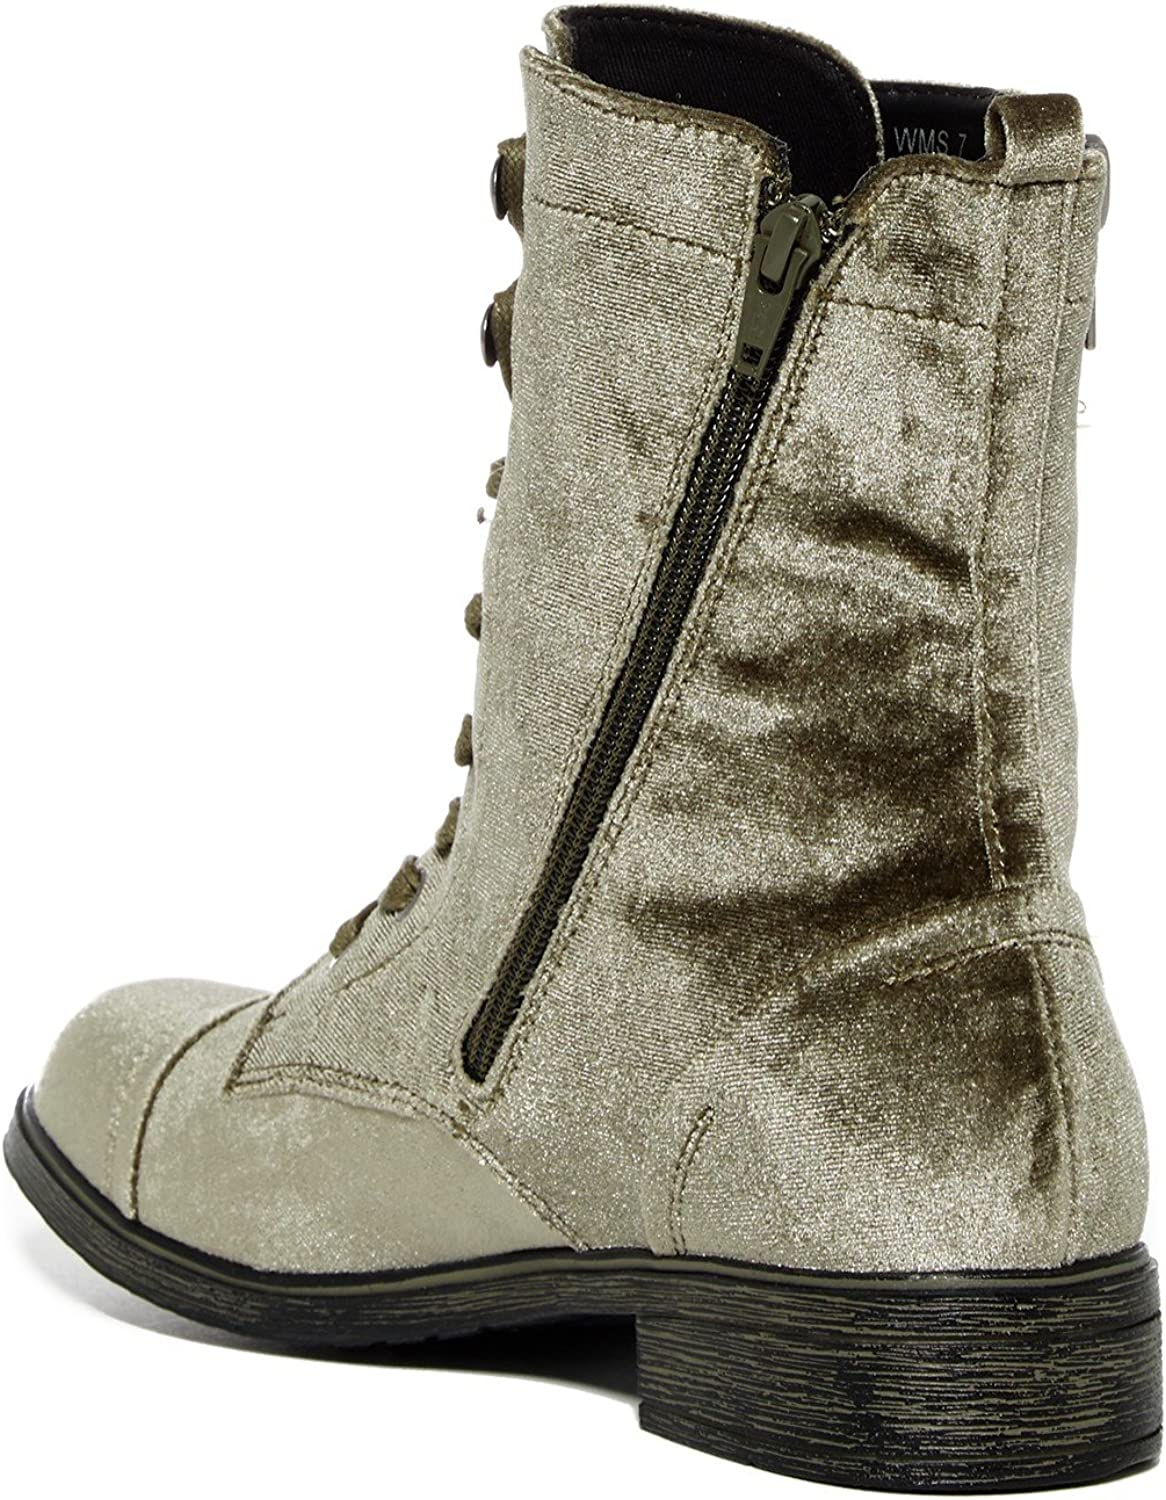 Report Footwear Womens Huey Lace Up Round Toe Mid-Calf Boots